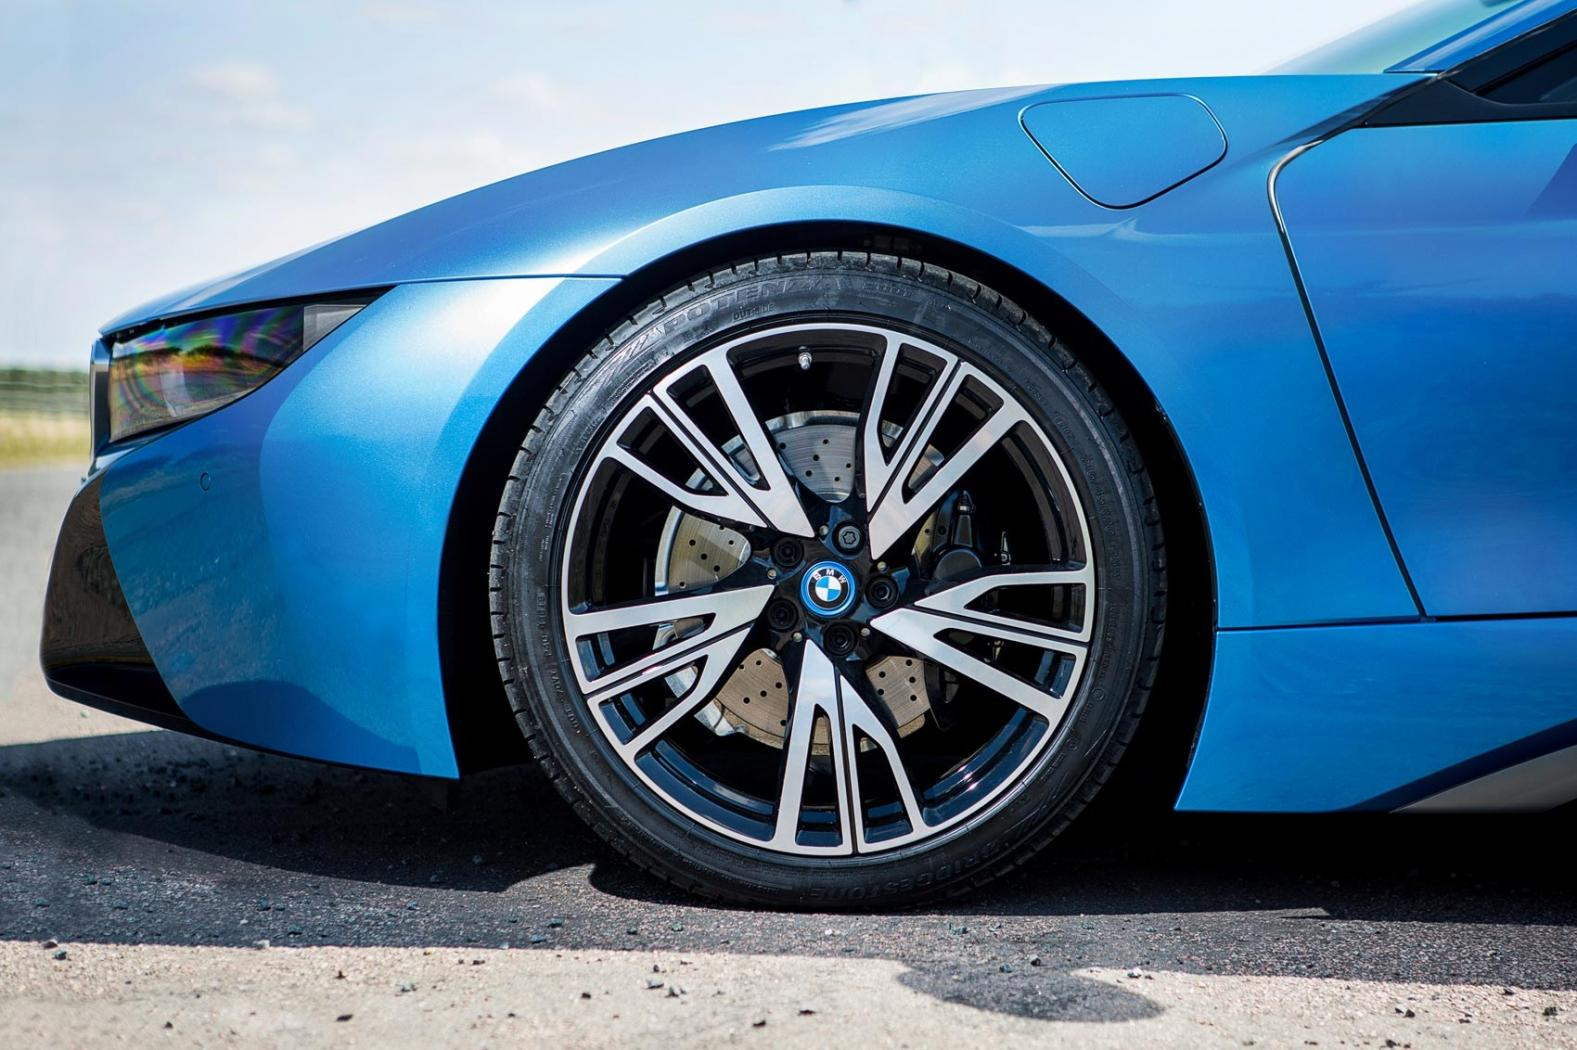 BMW-i8-occasion-6.jpeg